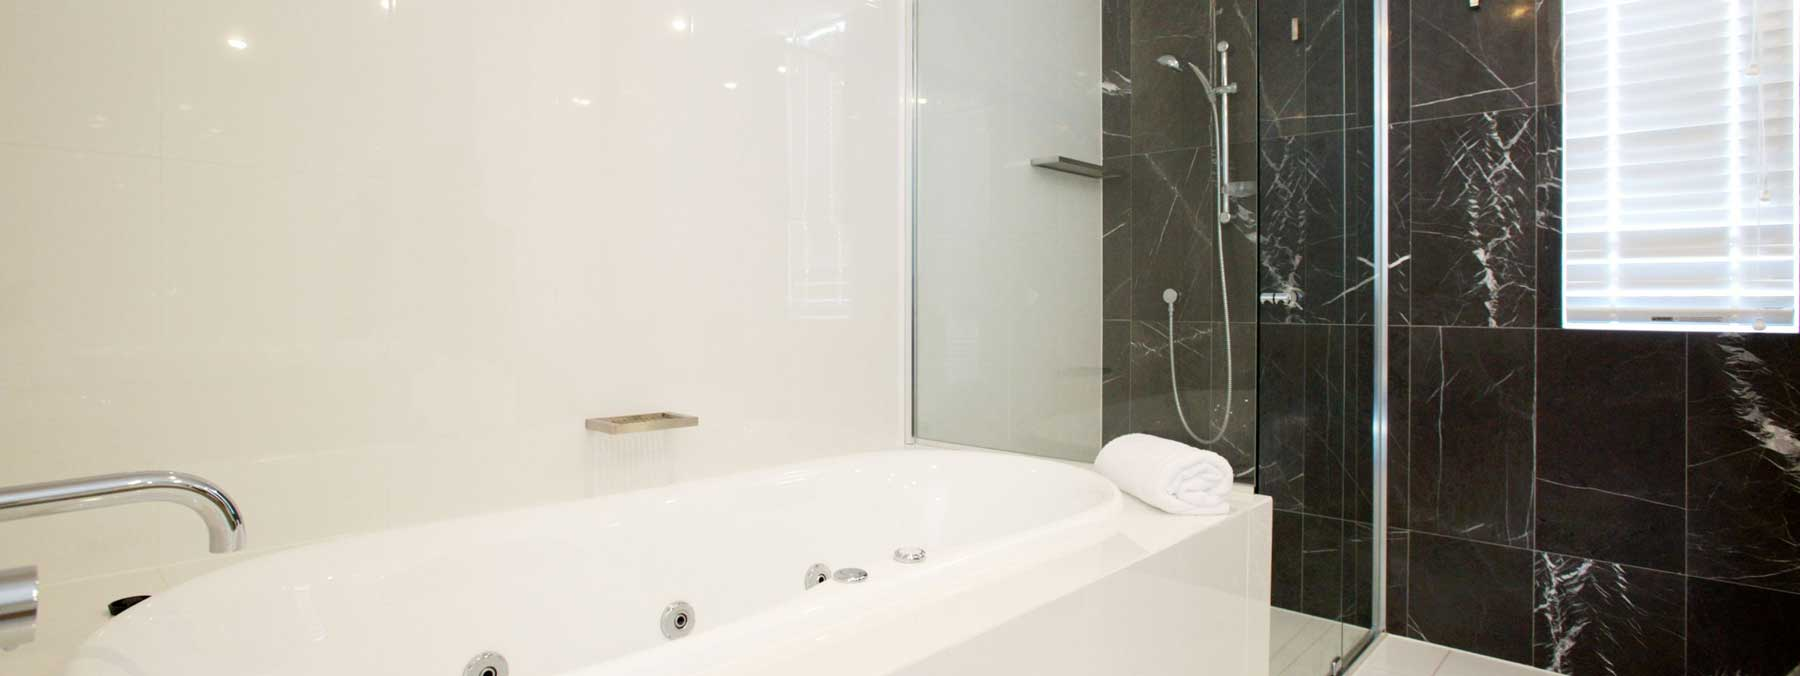 Fantastic Bathroom Renovations Baulkham Hills